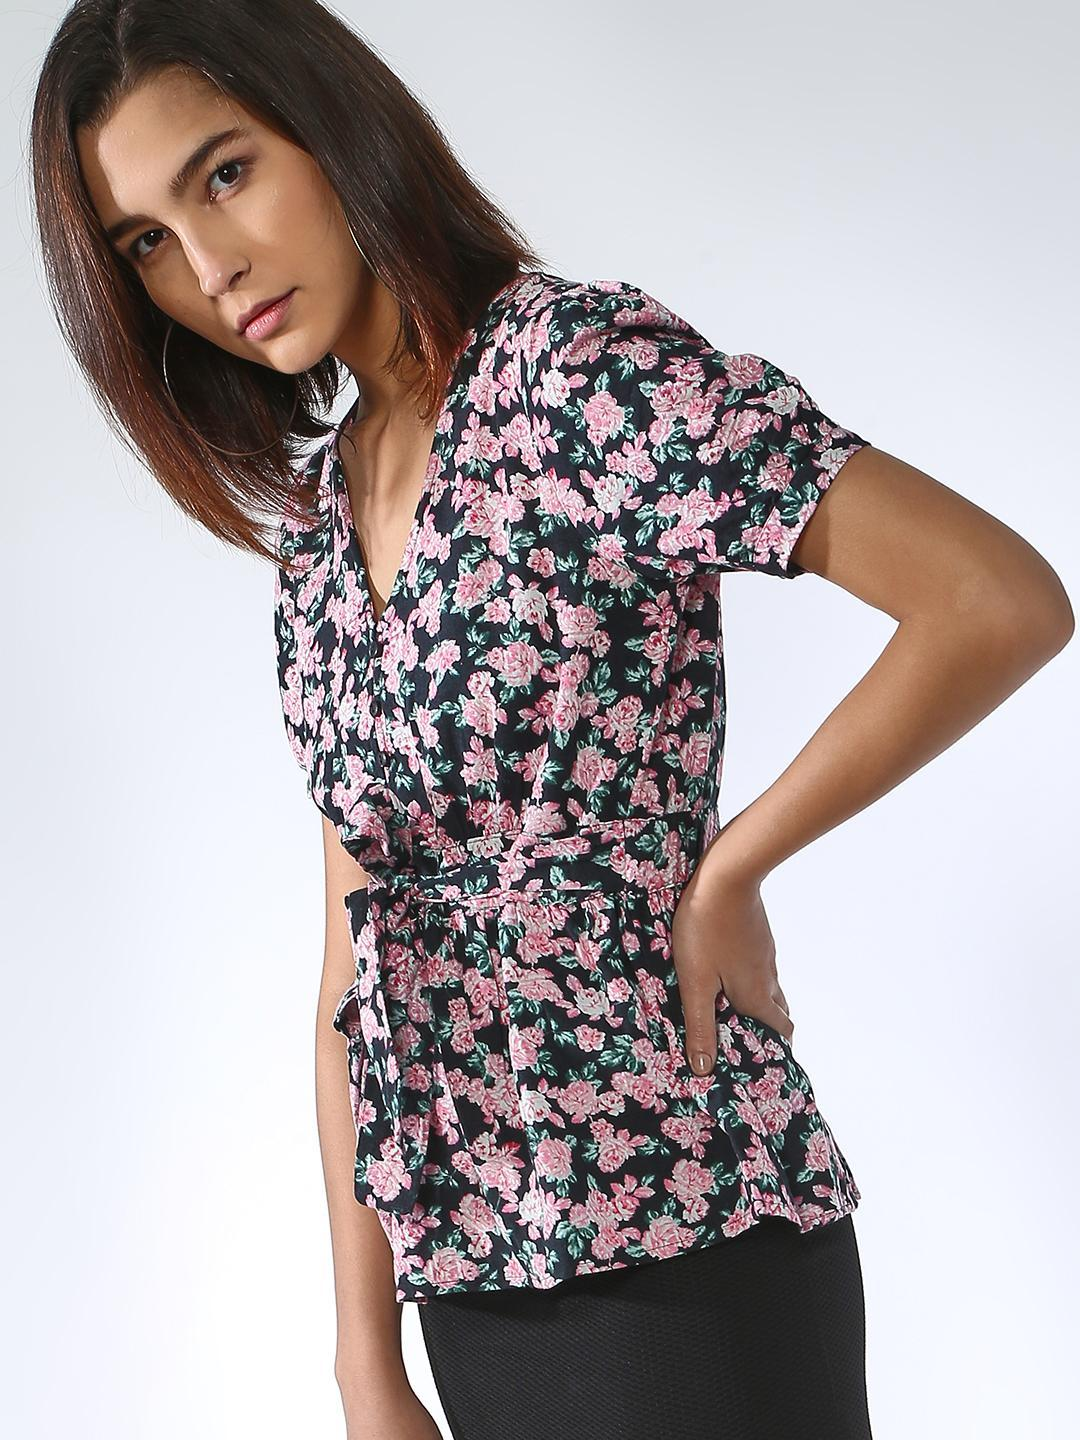 Oxolloxo Multi Floral Print Tie-Knot Top 1